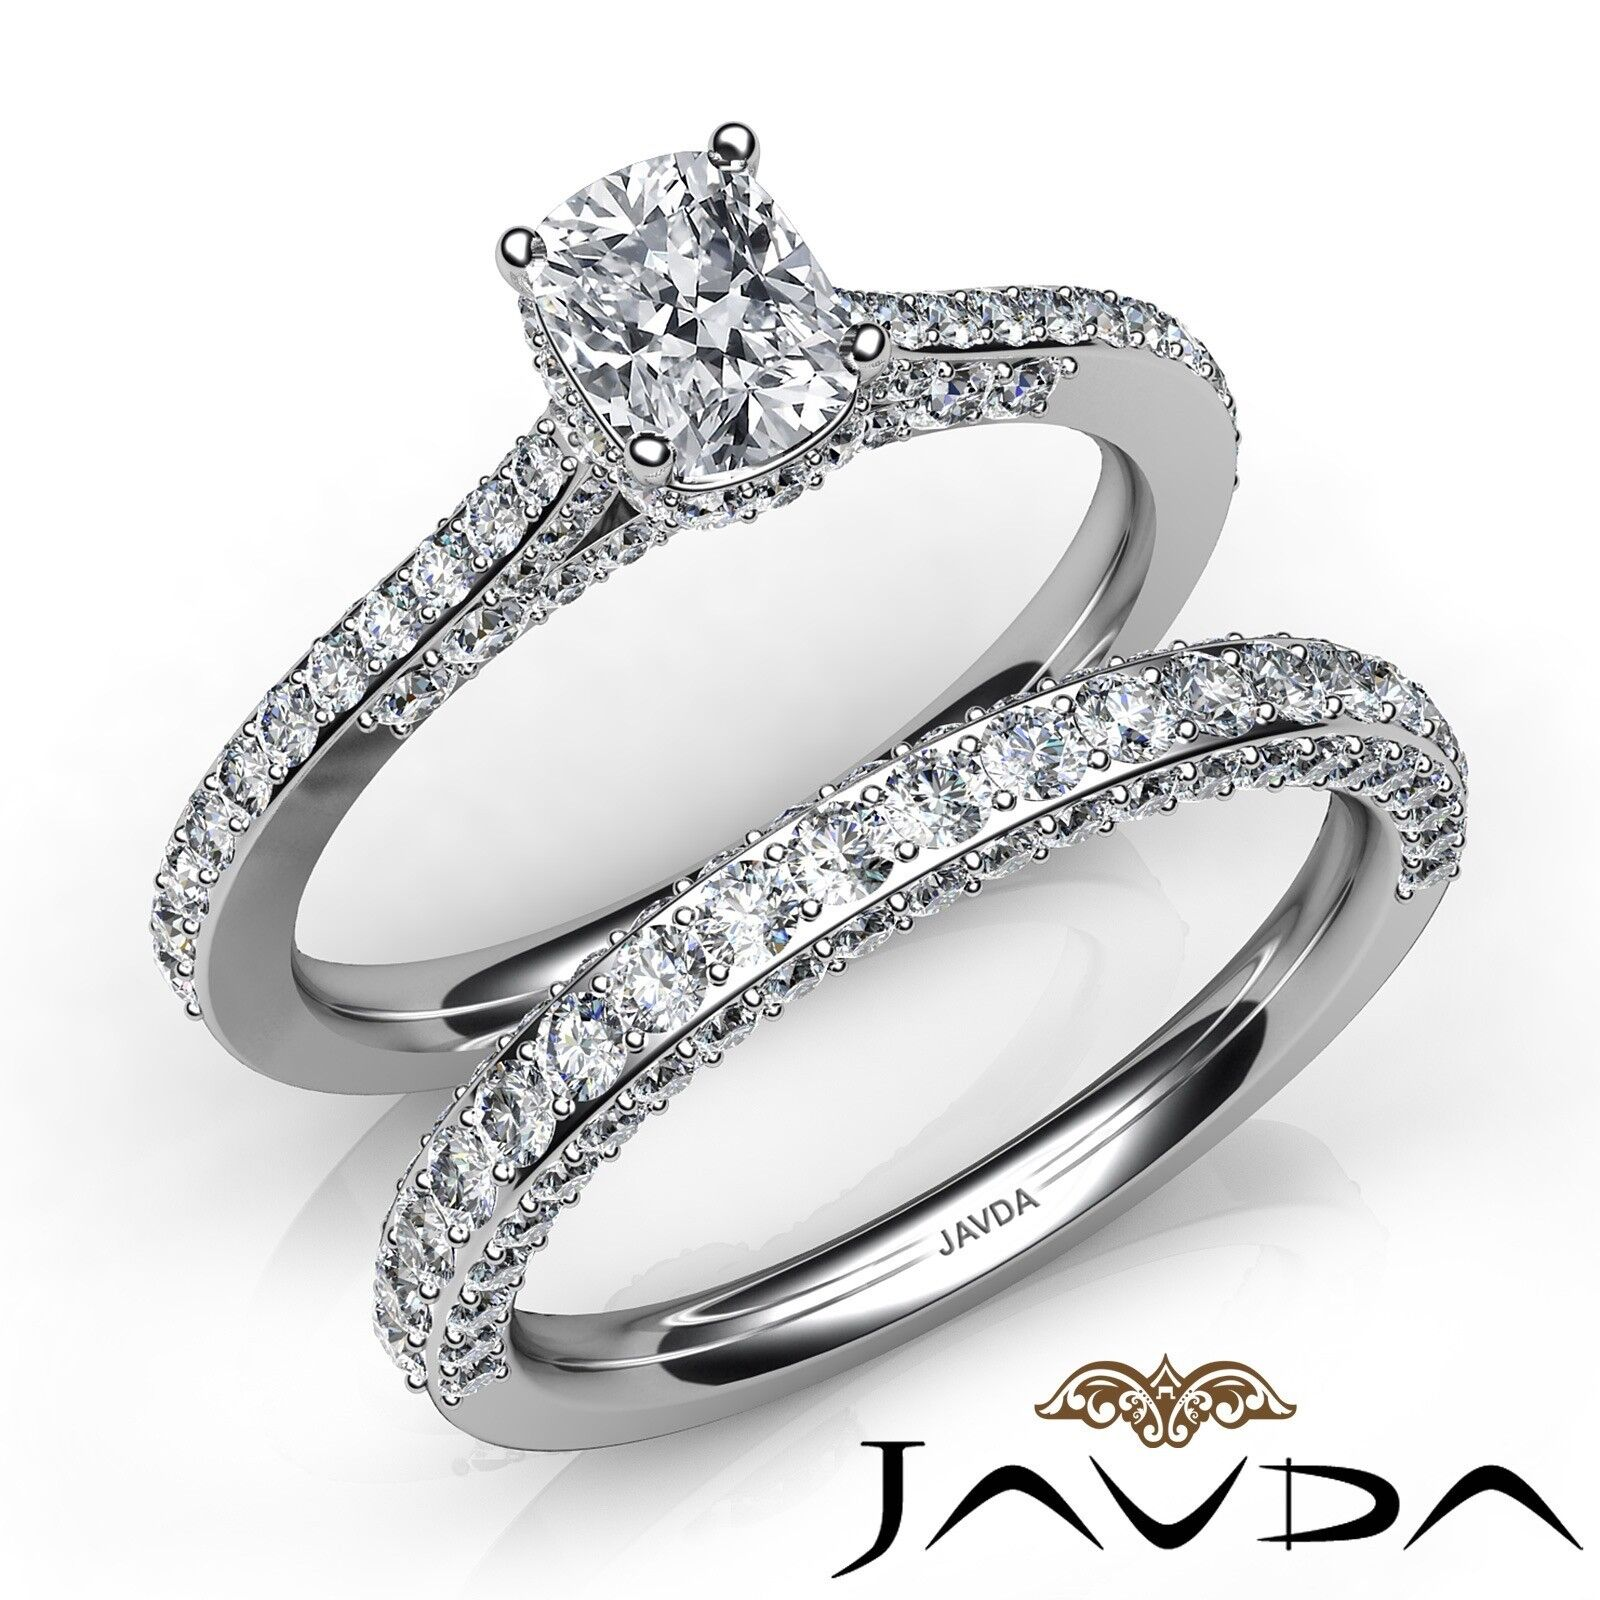 2.85ctw Pave Circa Halo Bridal Cushion Diamond Engagement Ring GIA F-VS1 W Gold